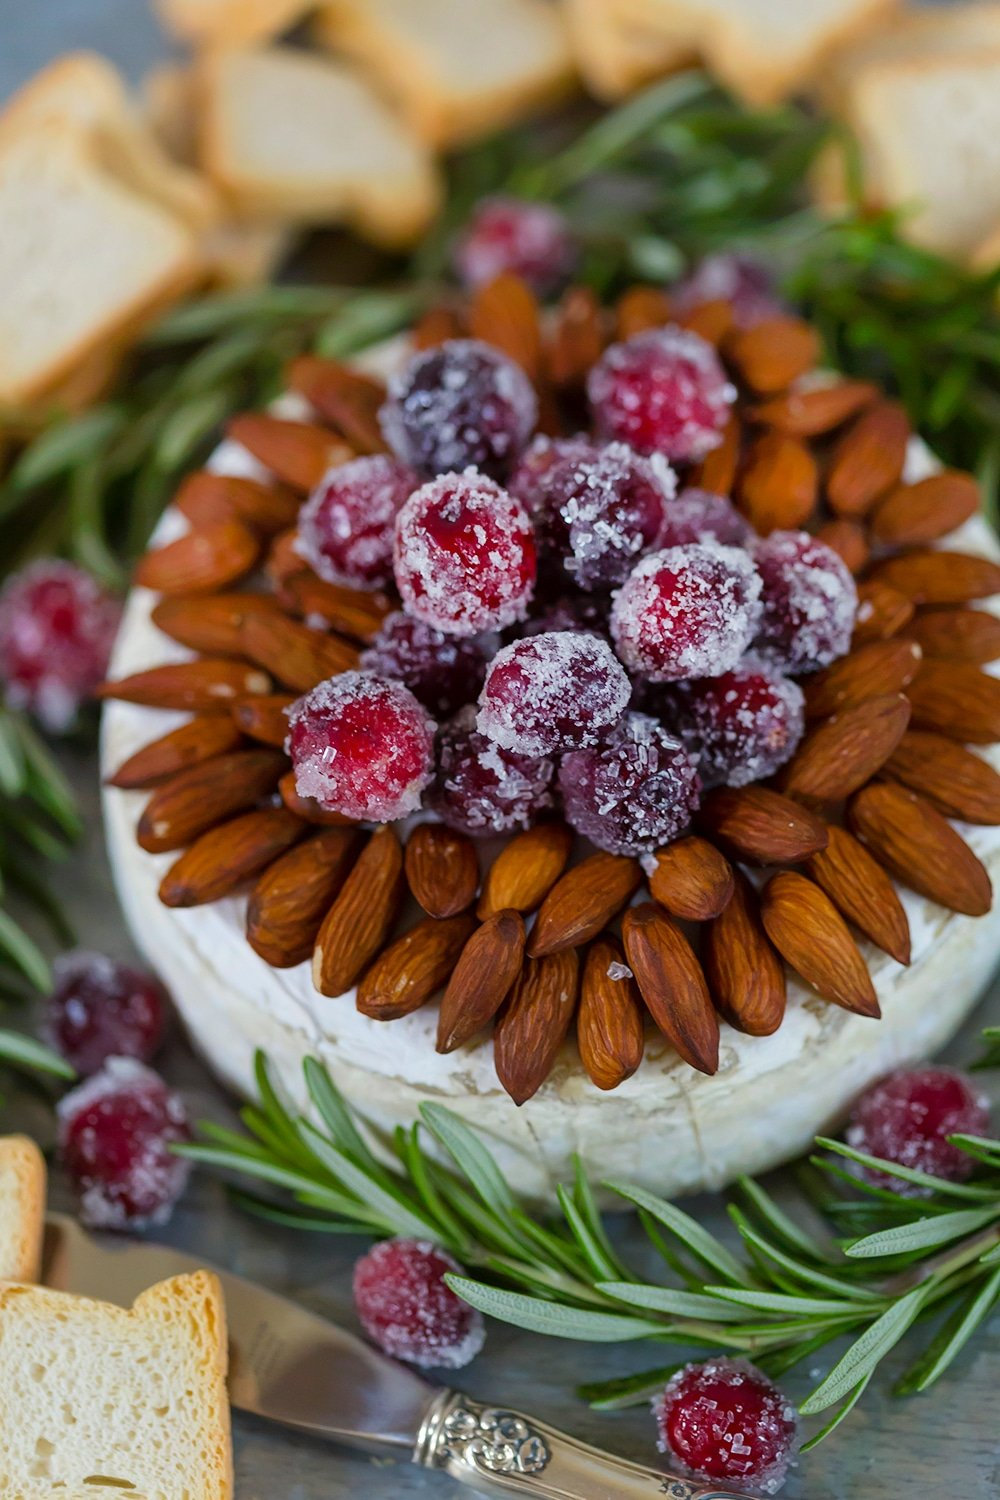 Sparkling Cranberry and Almond Baked Brie, fabulous holiday appetizer!